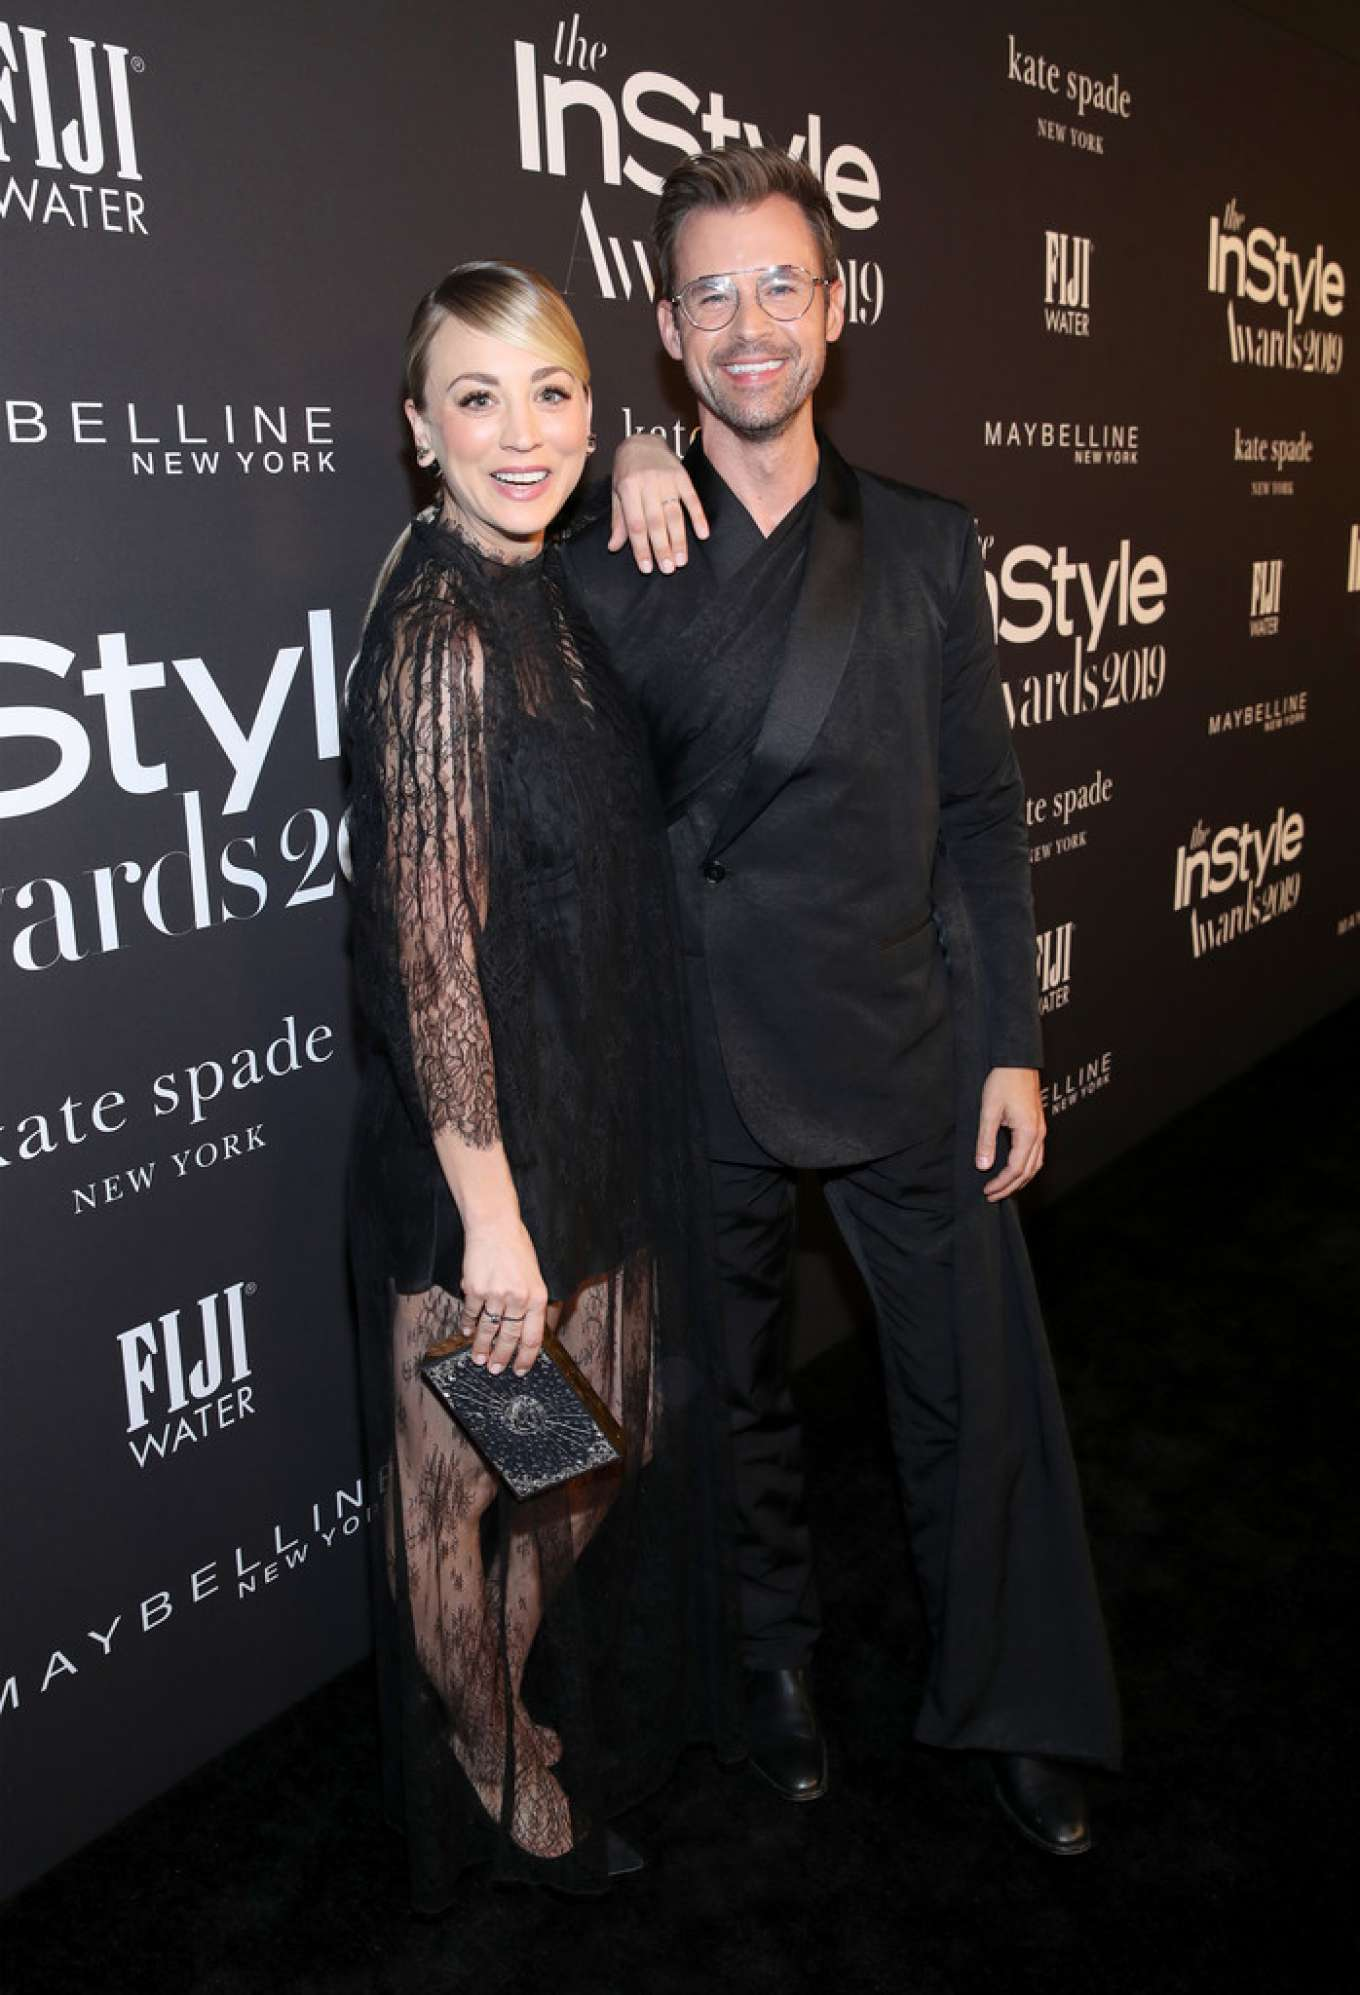 Kaley Cuoco - Black carpet at 2019 InStyle Awards in Los Angeles